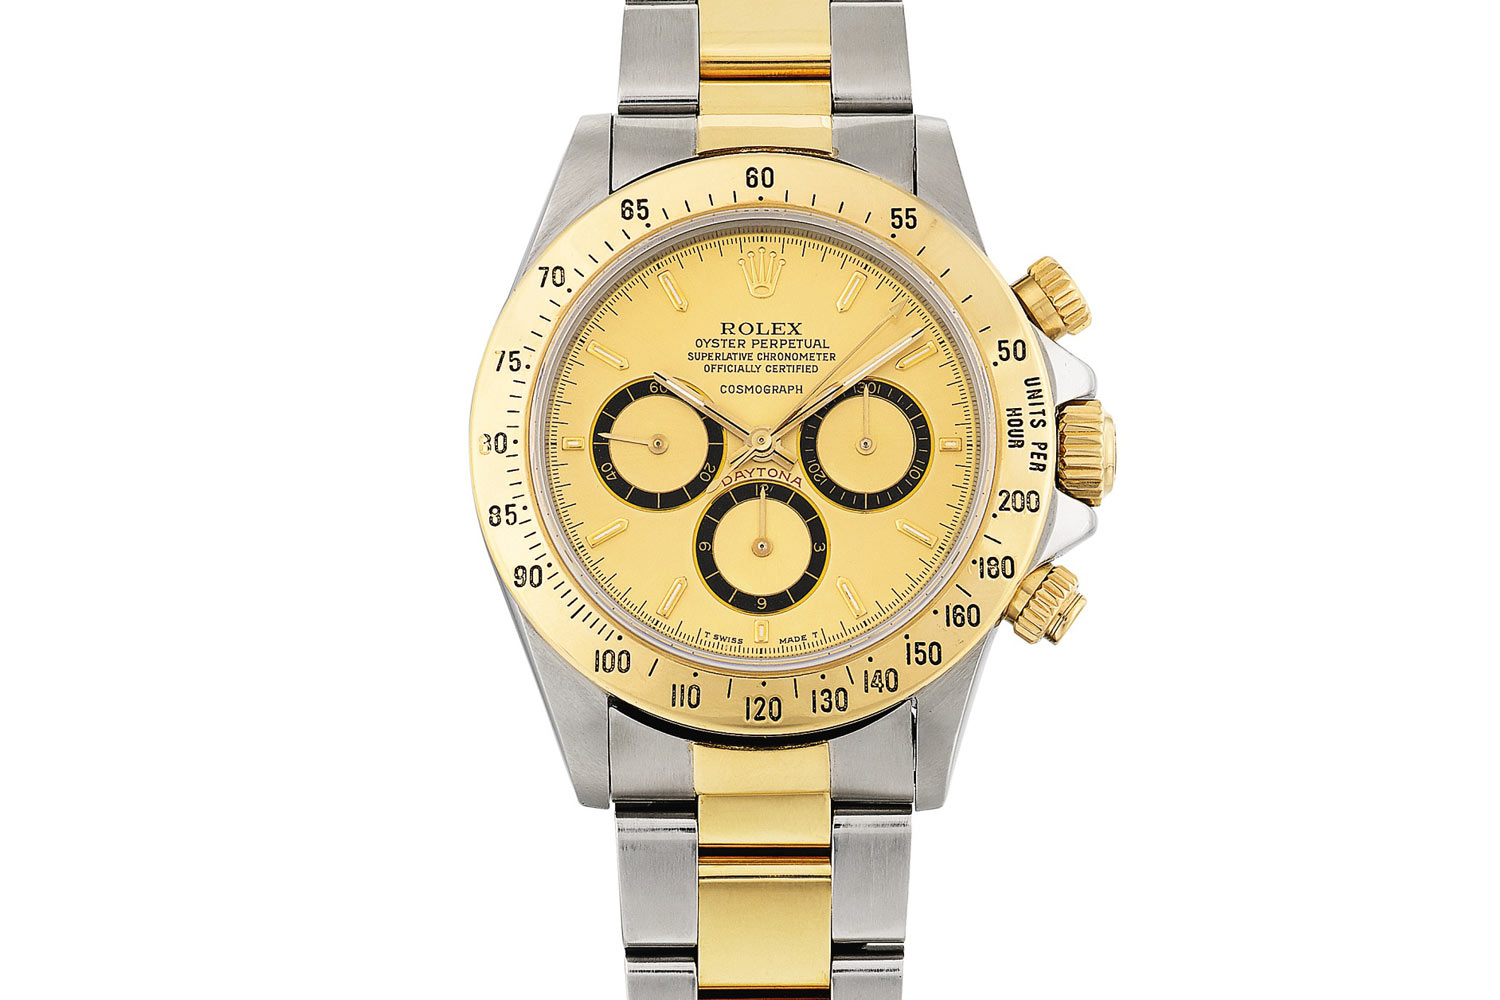 Lot 371: Rolex 'Floating Cosmograph Zenith' Daytona Ref. 16523. Stainless-steel and yellow gold chronograph wristwatch with bracelet, circa 1988